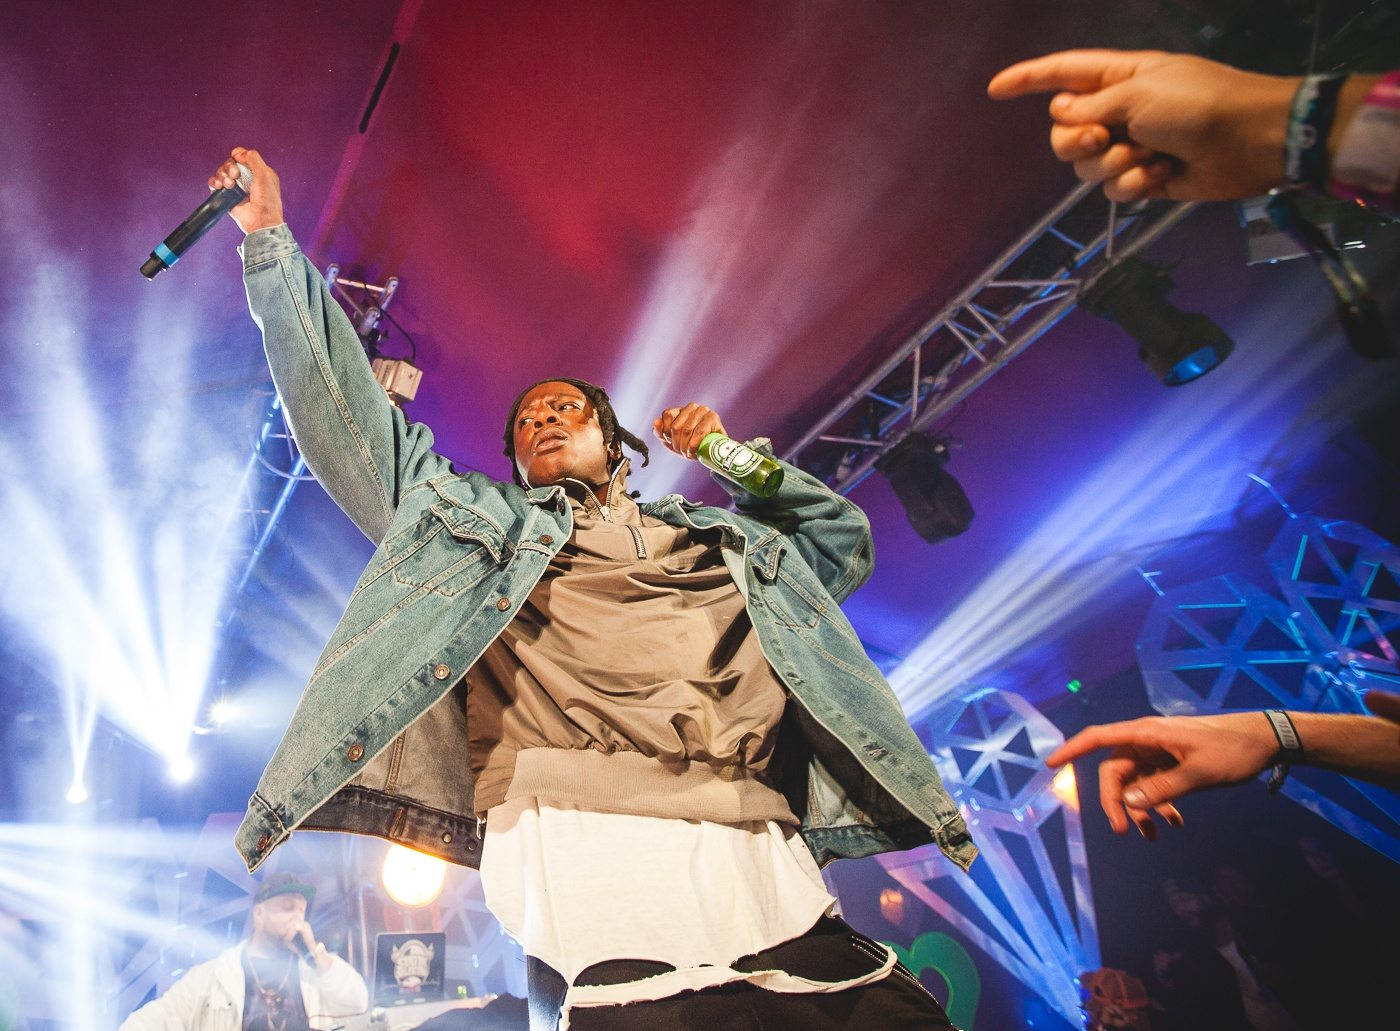 joey-bada-other-voices-electric-picnic-2016-6688